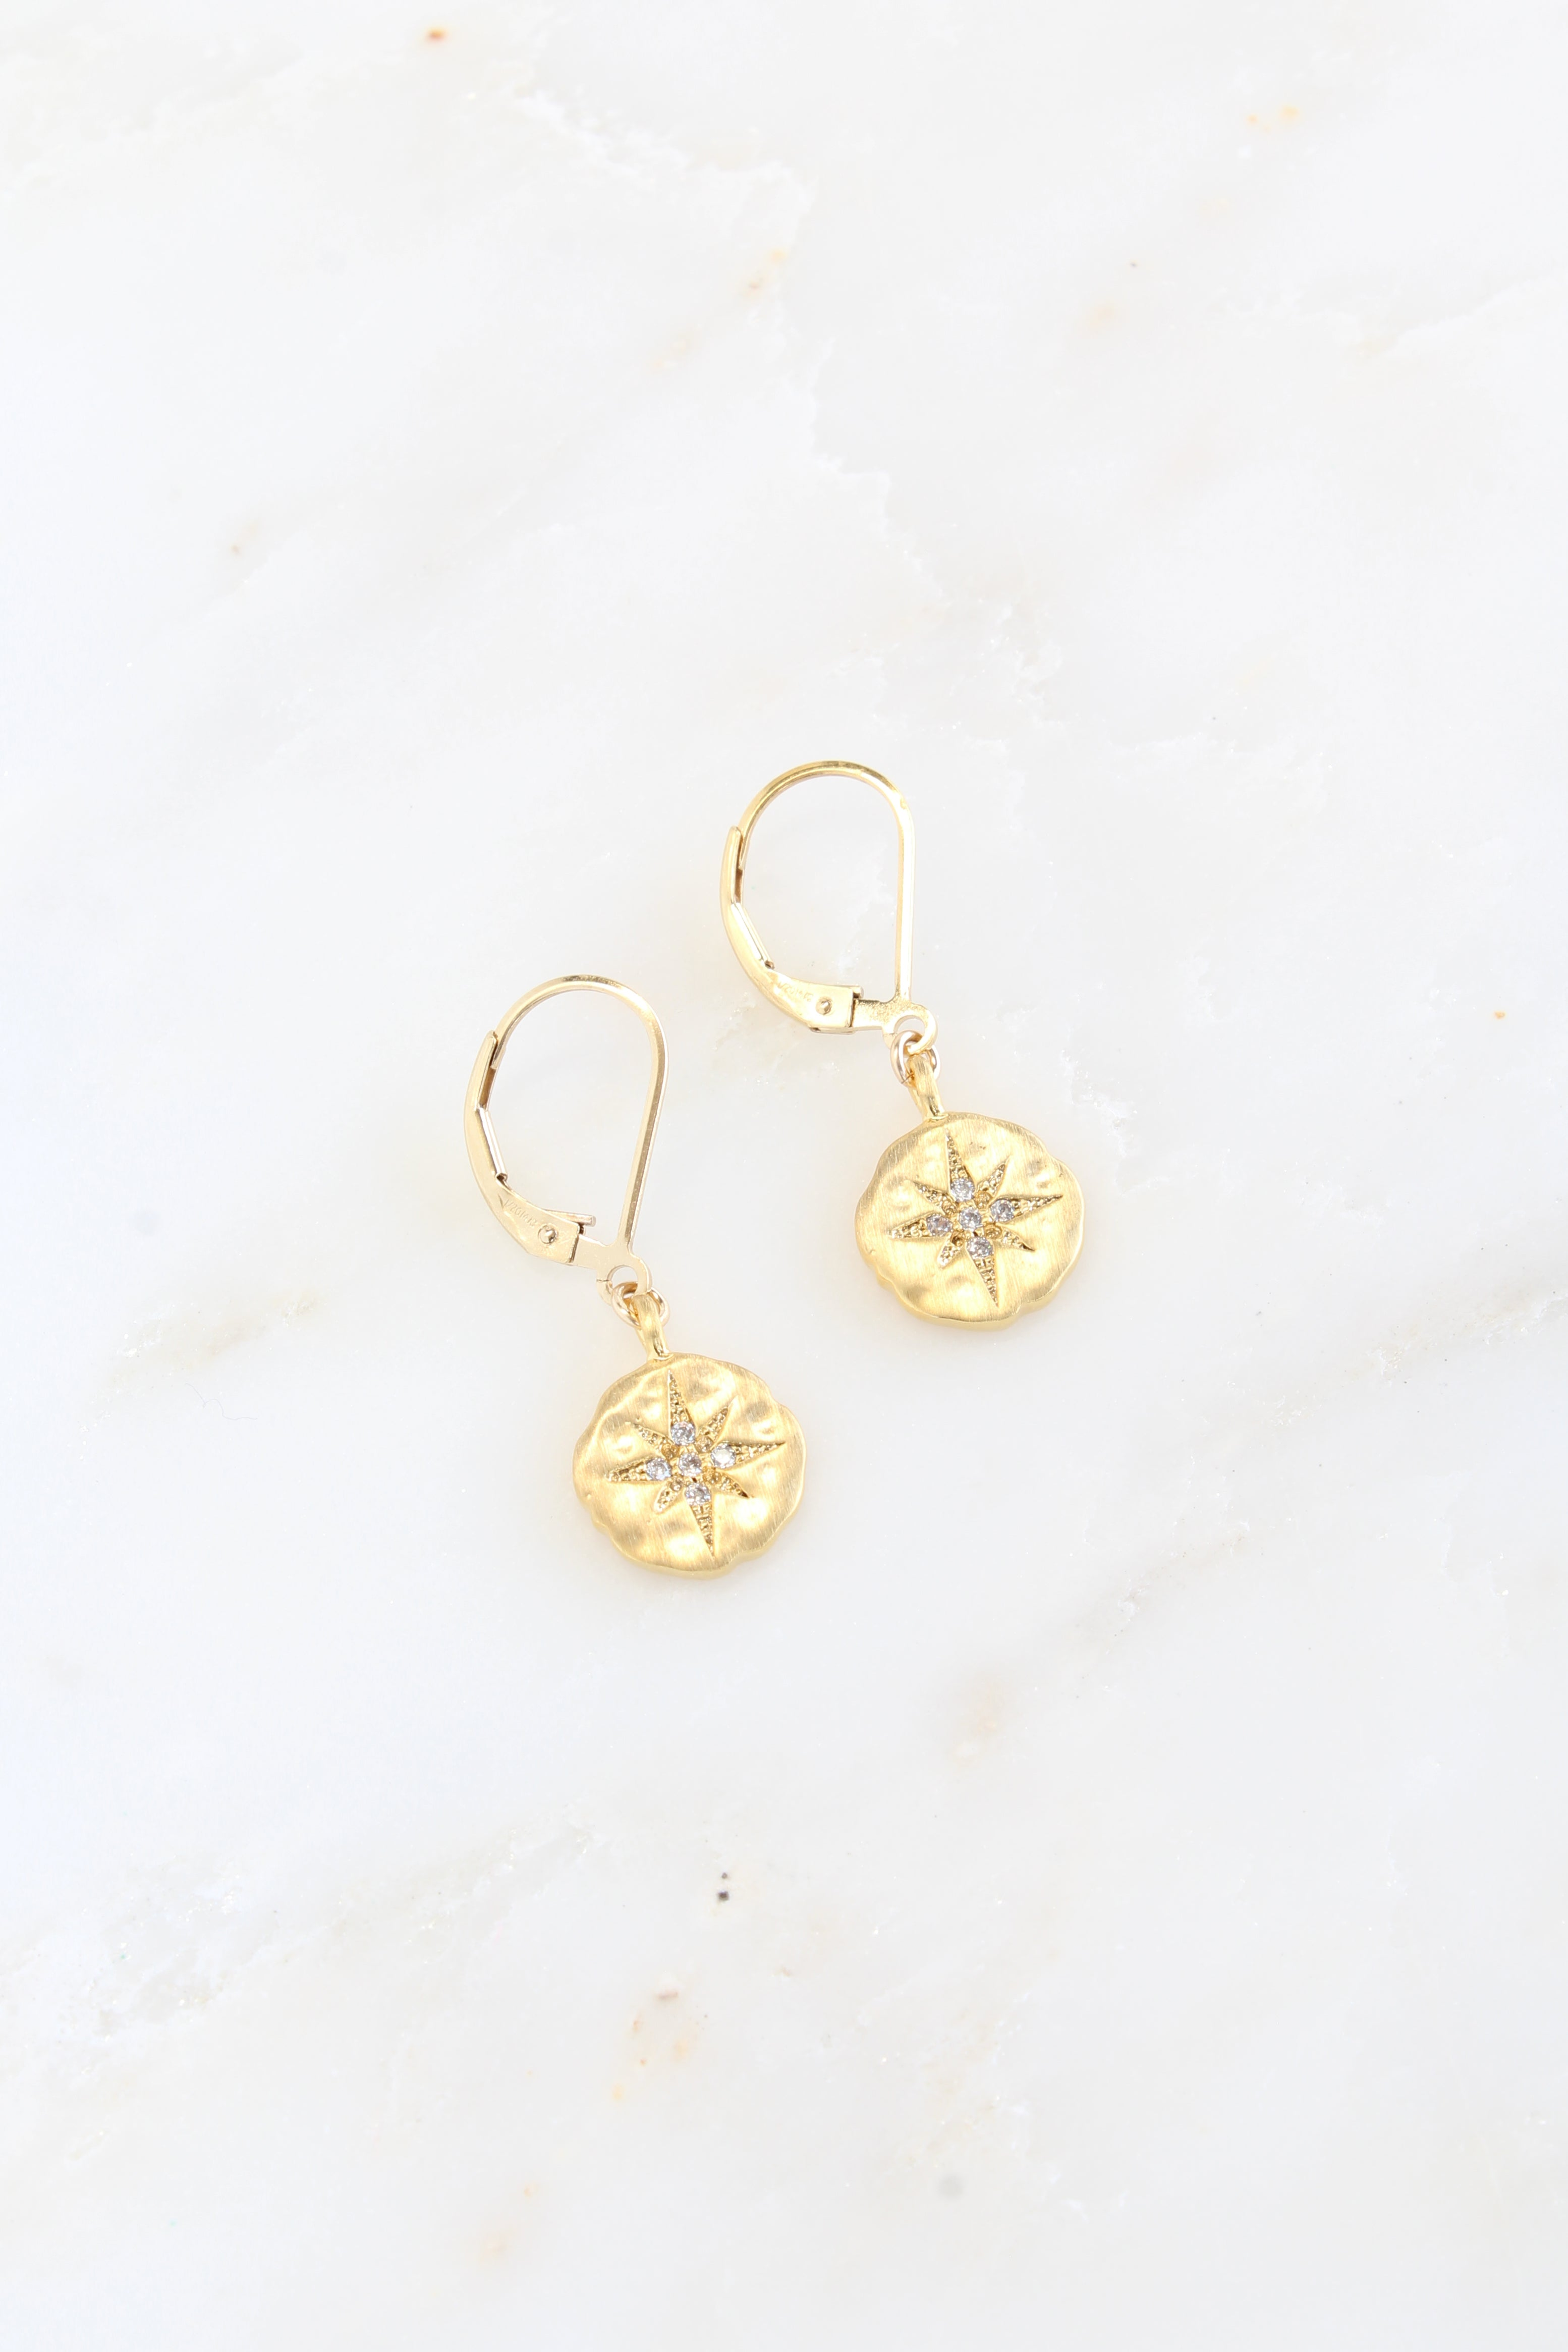 Gold Cubic Zirconia Starburst Earrings North Star Earrings Brooke Landon Jewelry